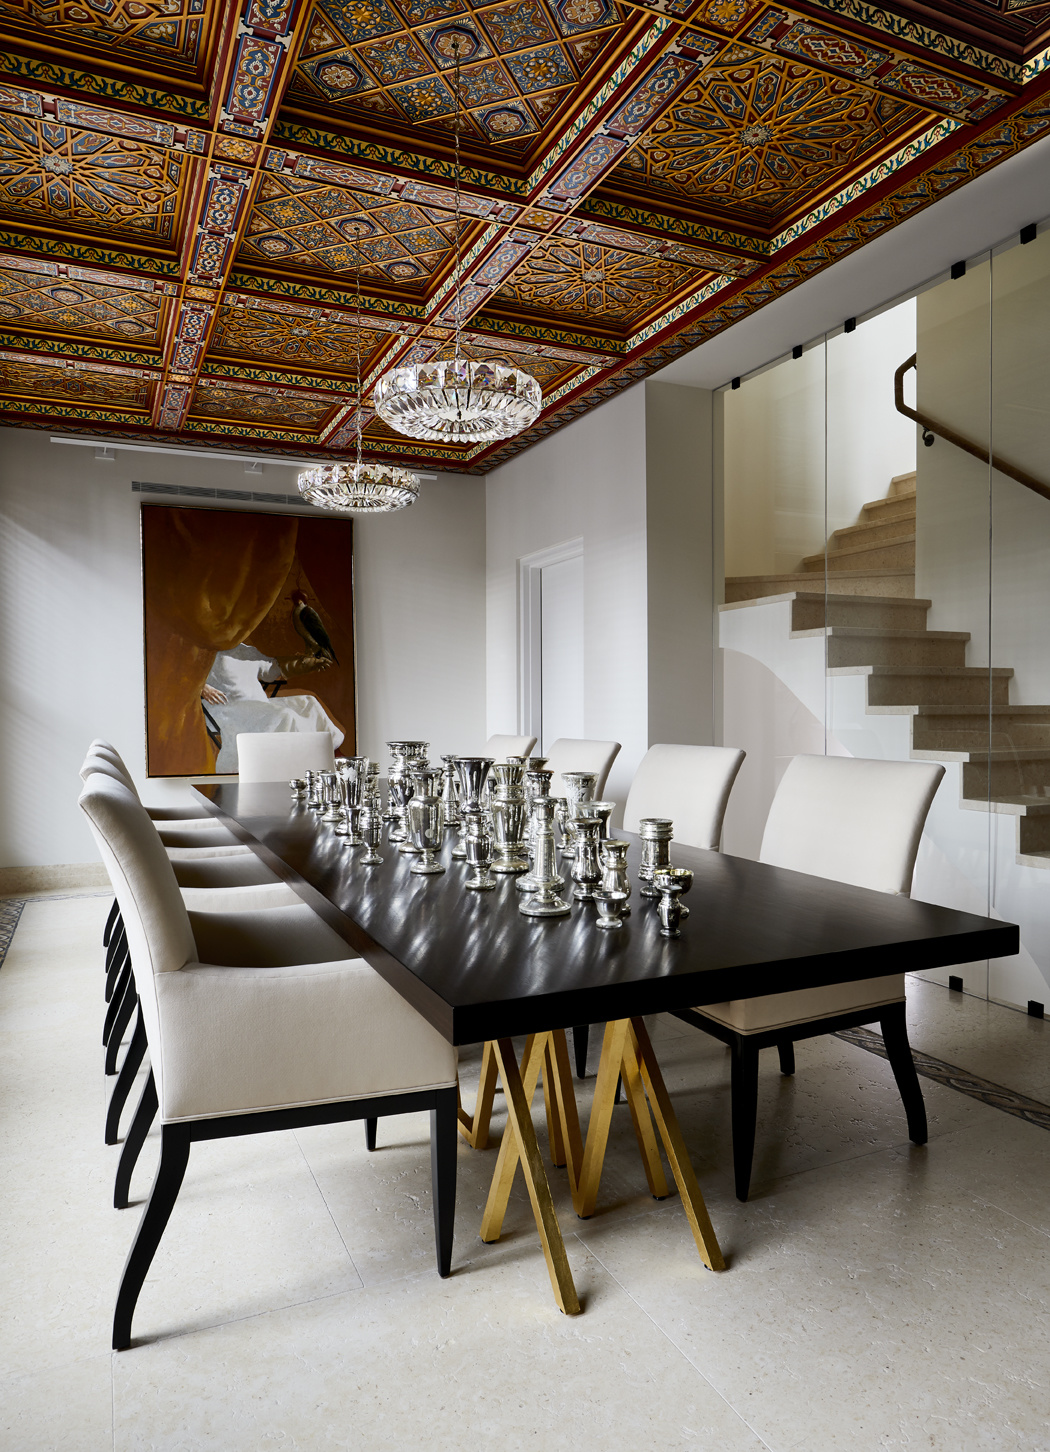 'BLAZE' DINING TABLE. In a private residence. Photo by Michael Garnacki.